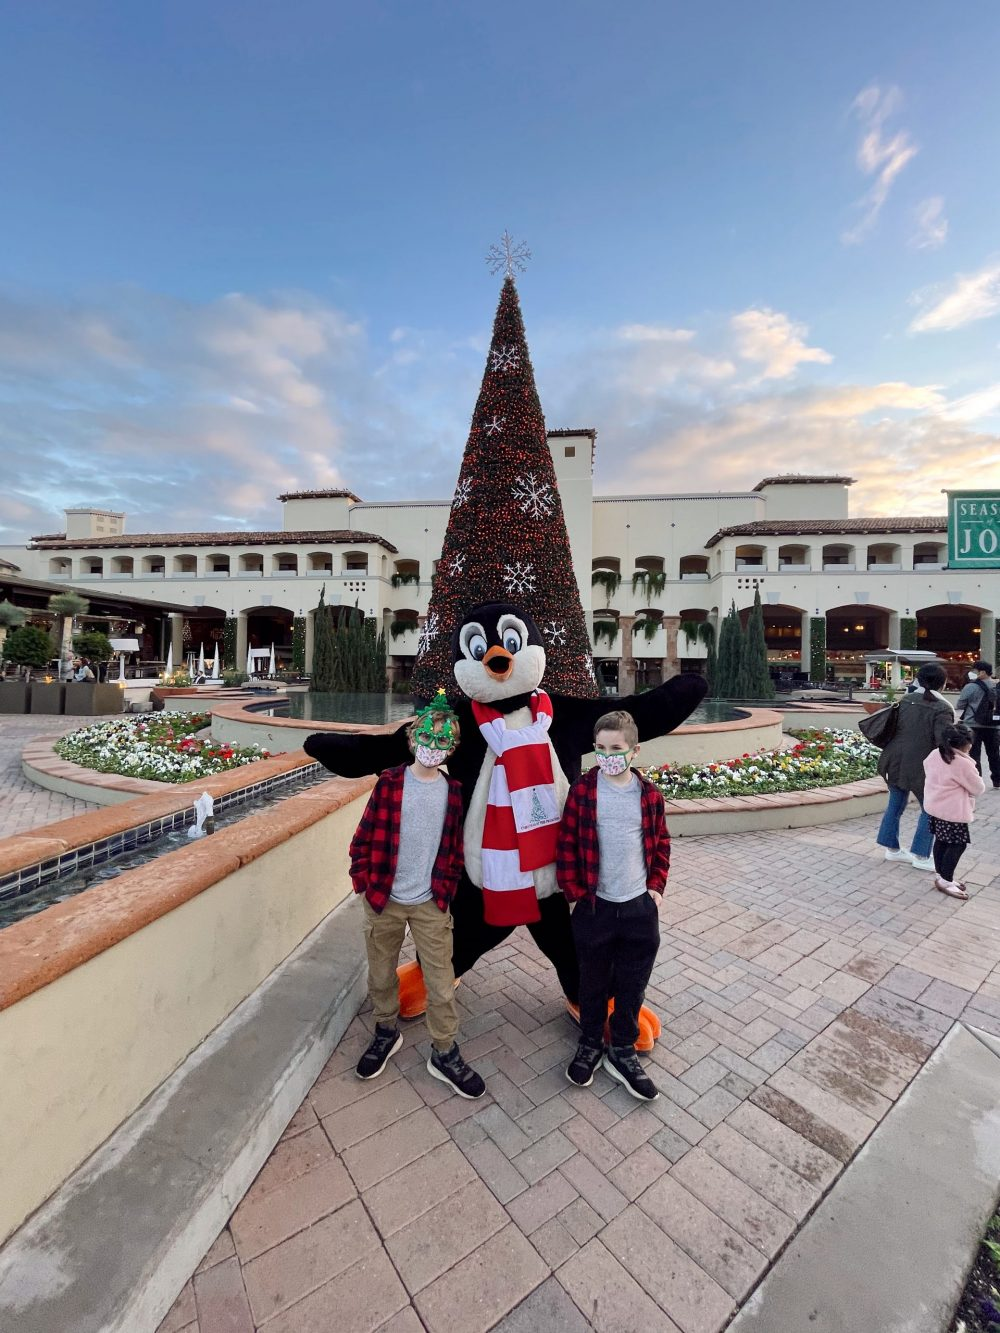 One of the Best Year Round Sun Destinations for Large Family Friendly Travel, Scottsdale Arizona. Holiday Winter Fun at Christmas at the Princess at the Fairmont Scottsdale Princess. |Guide by popular Florida travel blog, Fresh Mommy Blog: image of two young boys standing with someone in a penguin costume.